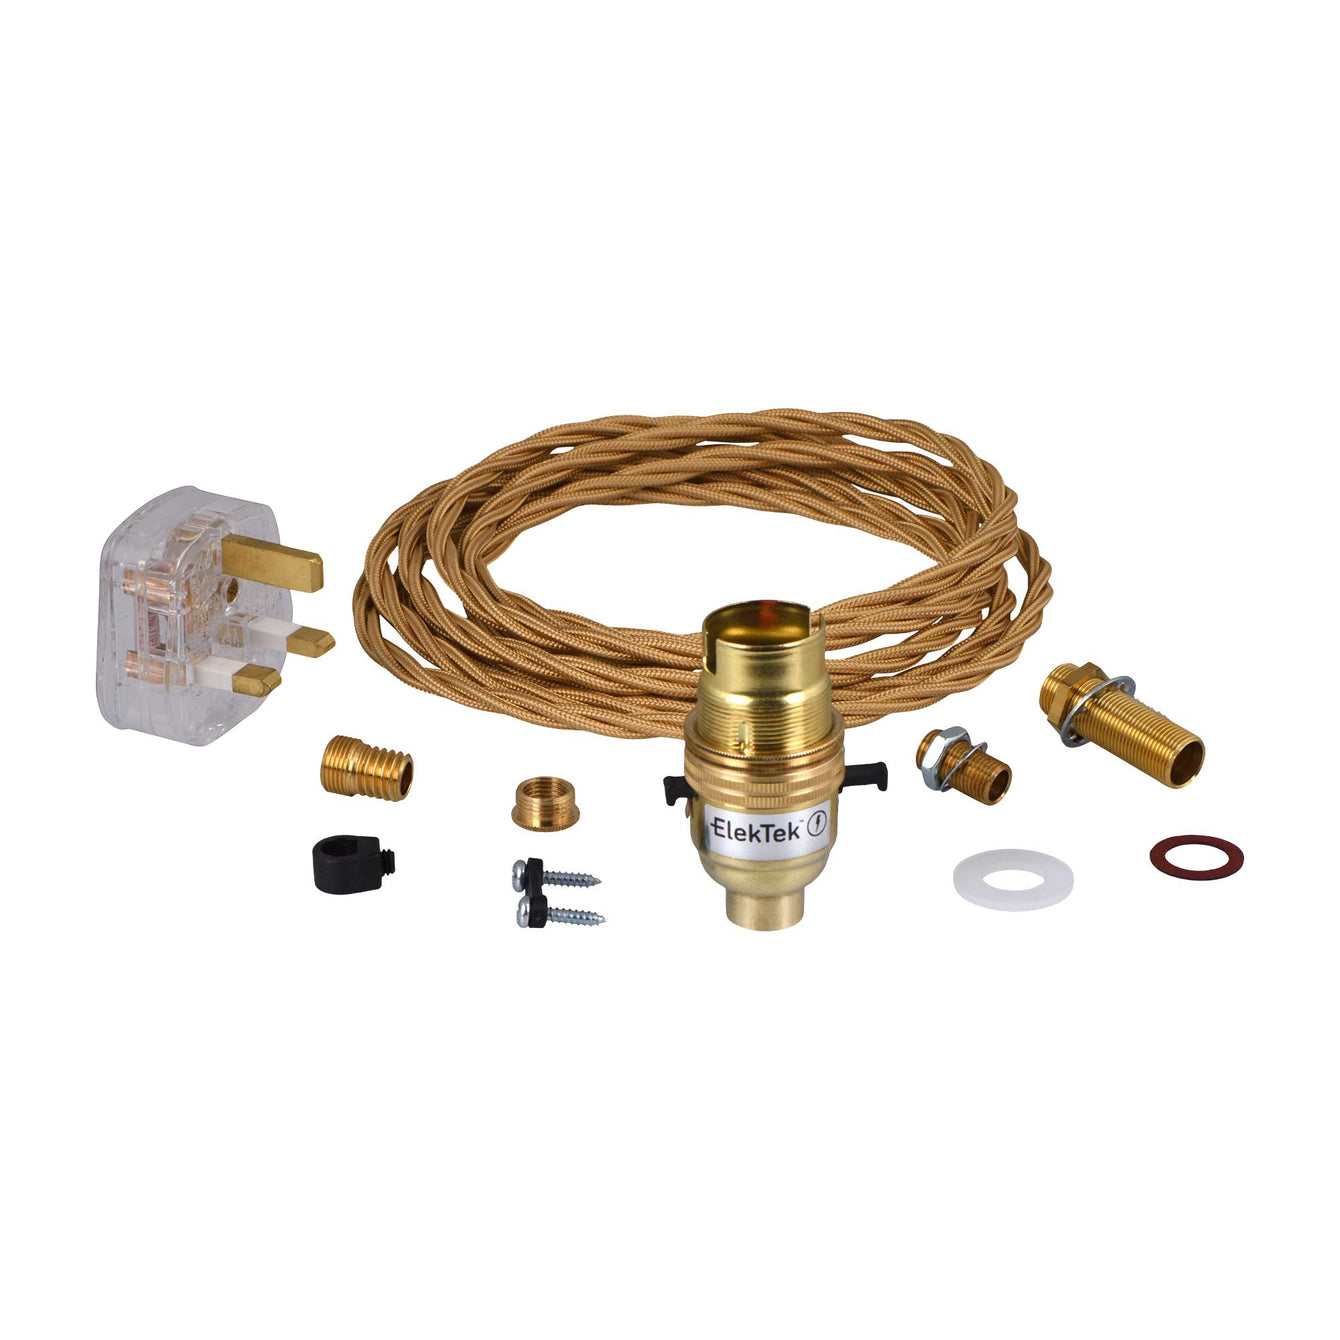 ElekTek Premium Lamp Kit Brass Safety Switch B22 Lamp Holder with Gold Flex and 3A UK Plug - Buy It Better